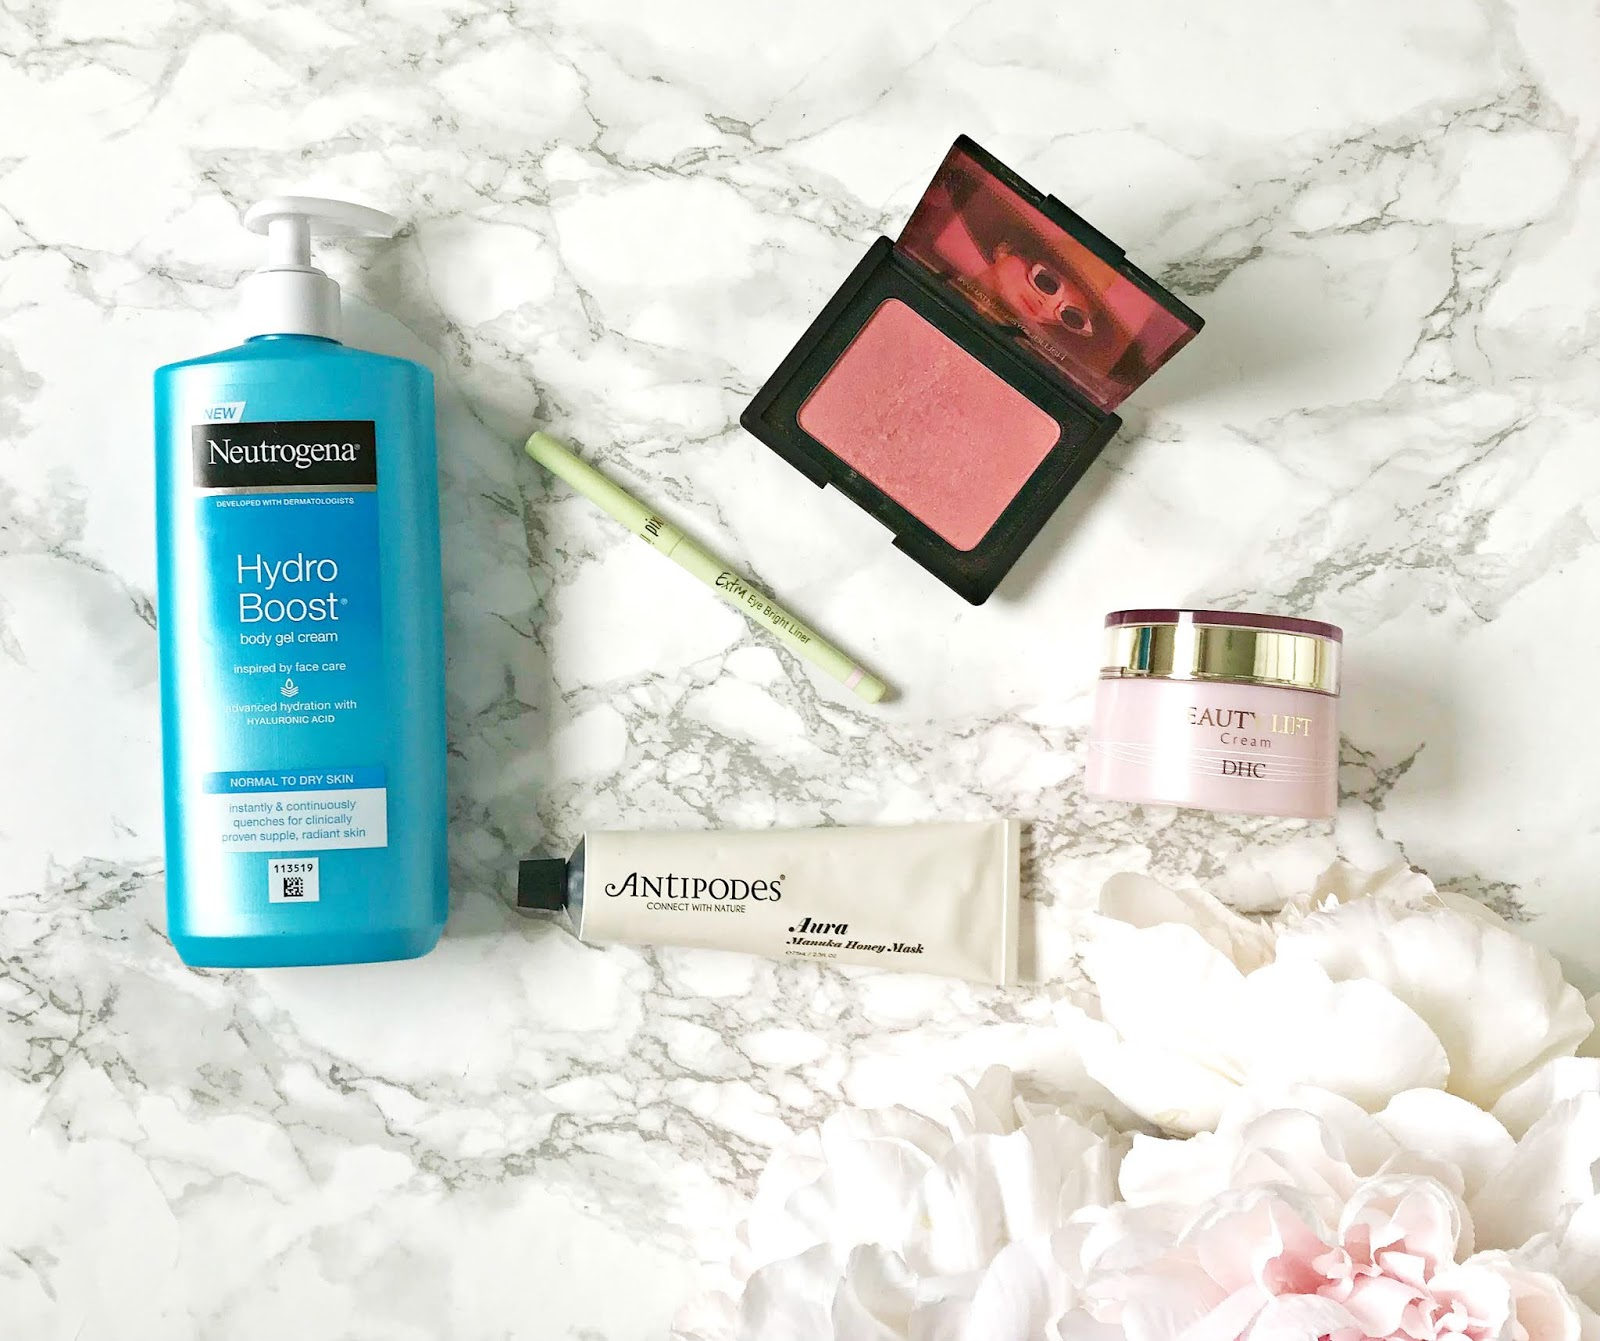 Neutrogena Hydro Boost Body Gel Cream Review, DHC Beauty Lift Cream Review, Antipodes Aura Manuka Honey Mask Review, Nars Orgasm Blush Review, Pixi Extra Eye Bright Liner Review